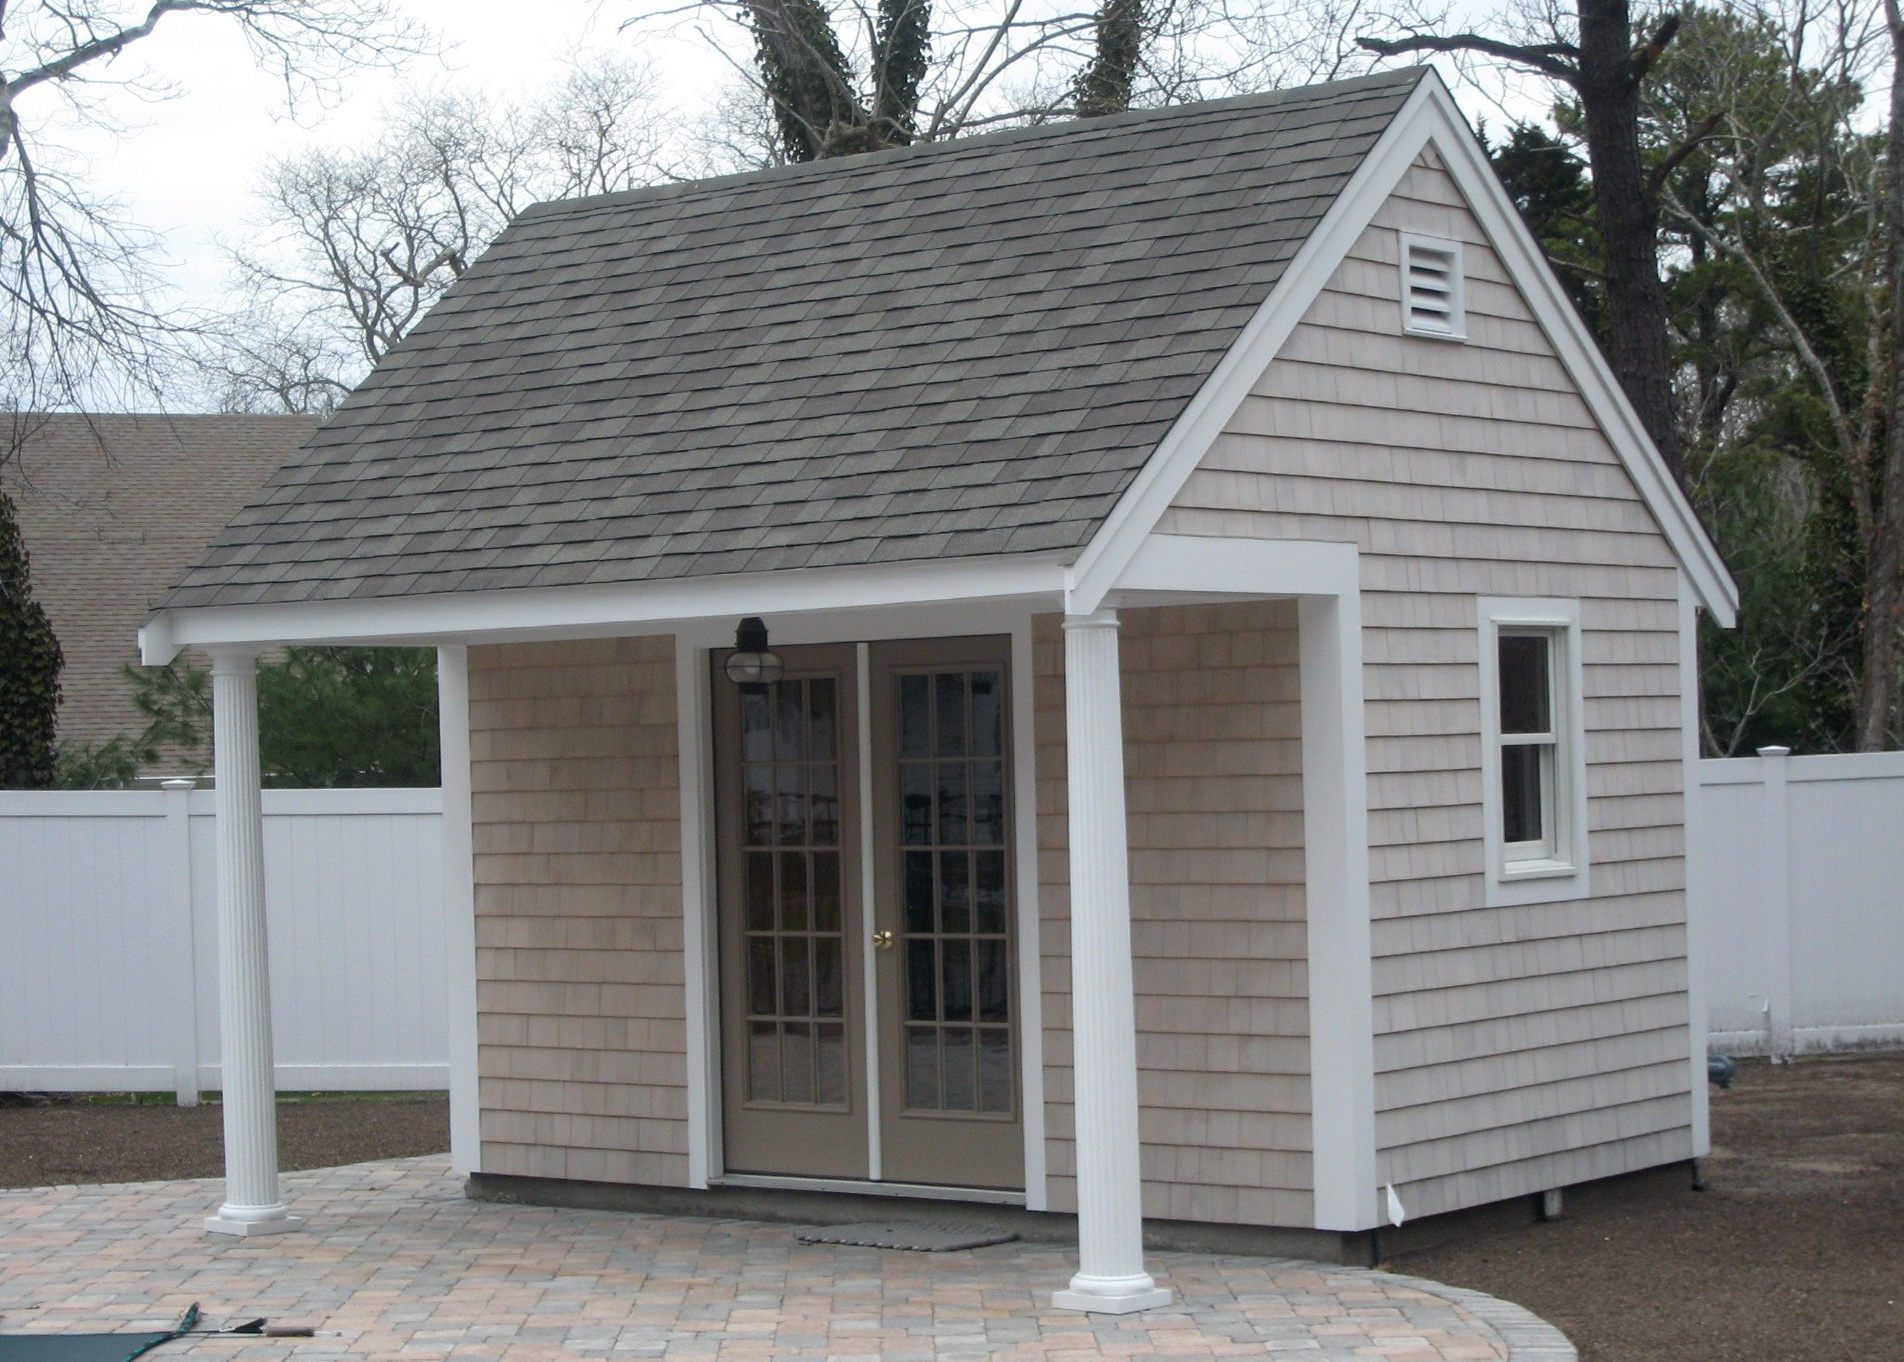 Storage Shed With Porch Plans Home Design Ideas